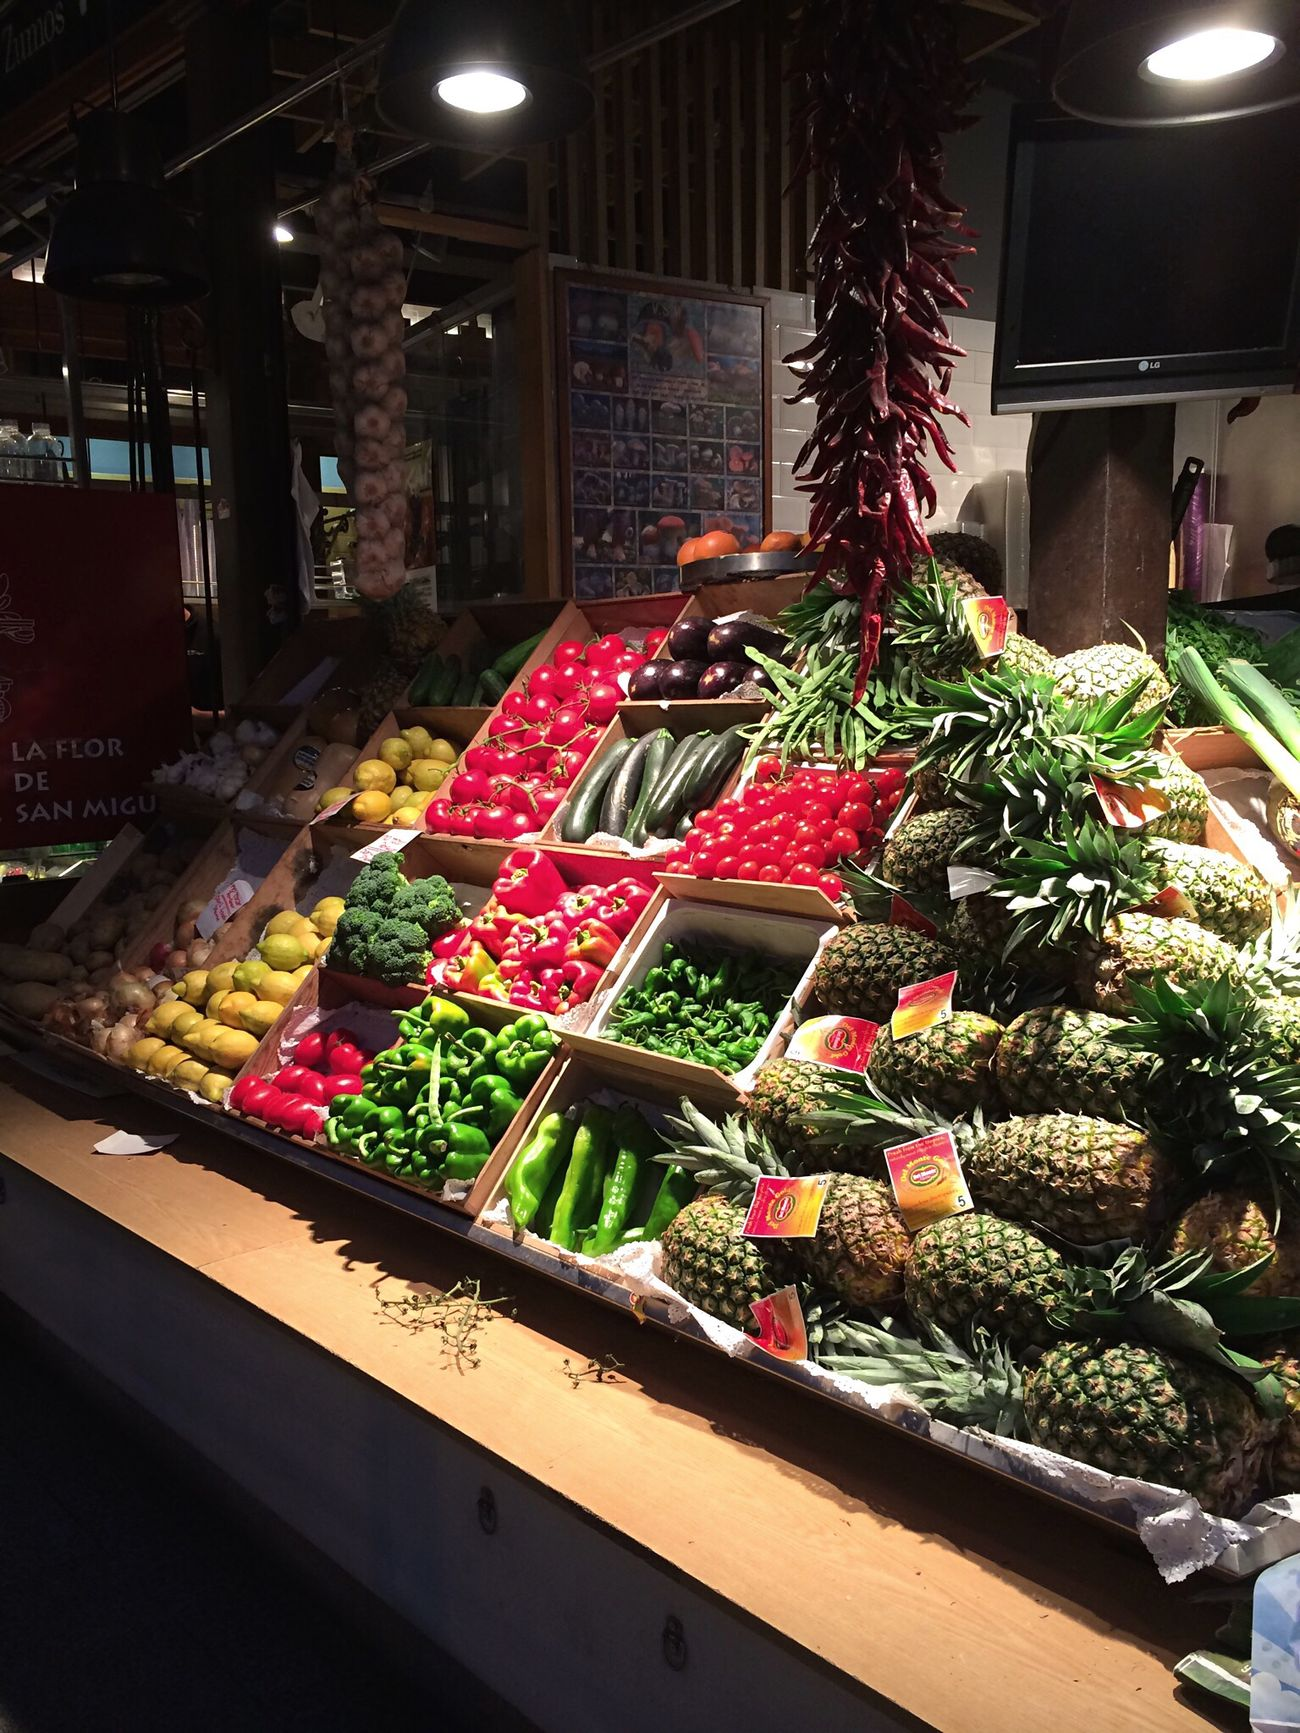 Market Mercato Frutta Verdura Frutta E Verdura Fruit Vegetables Madrid Madrid Spain Red Green Rosso Verde